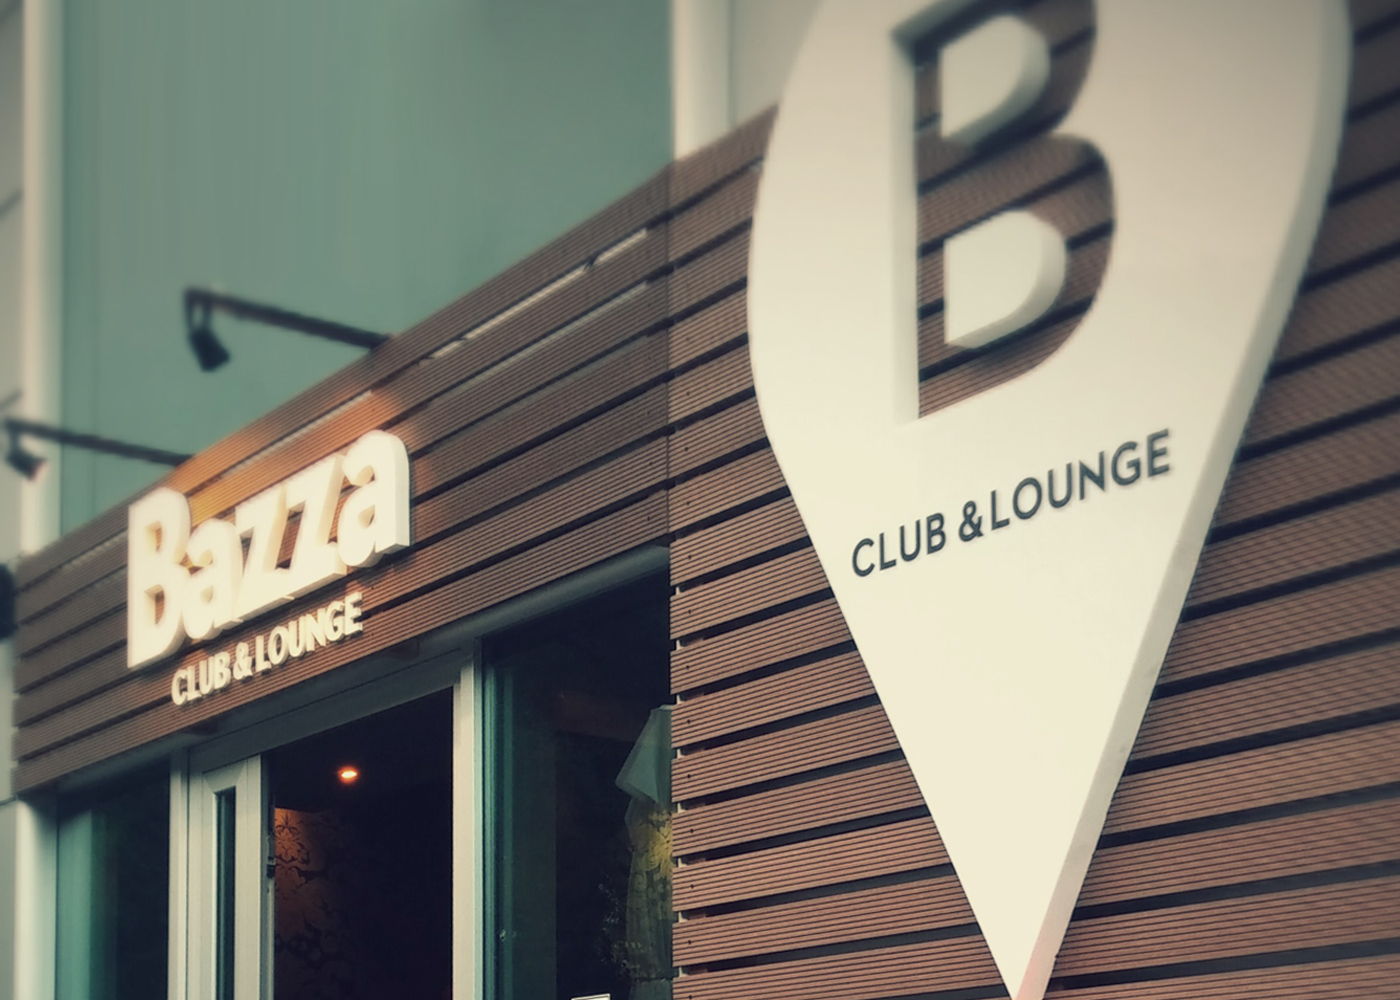 The visual identity of Bazza club & lounge